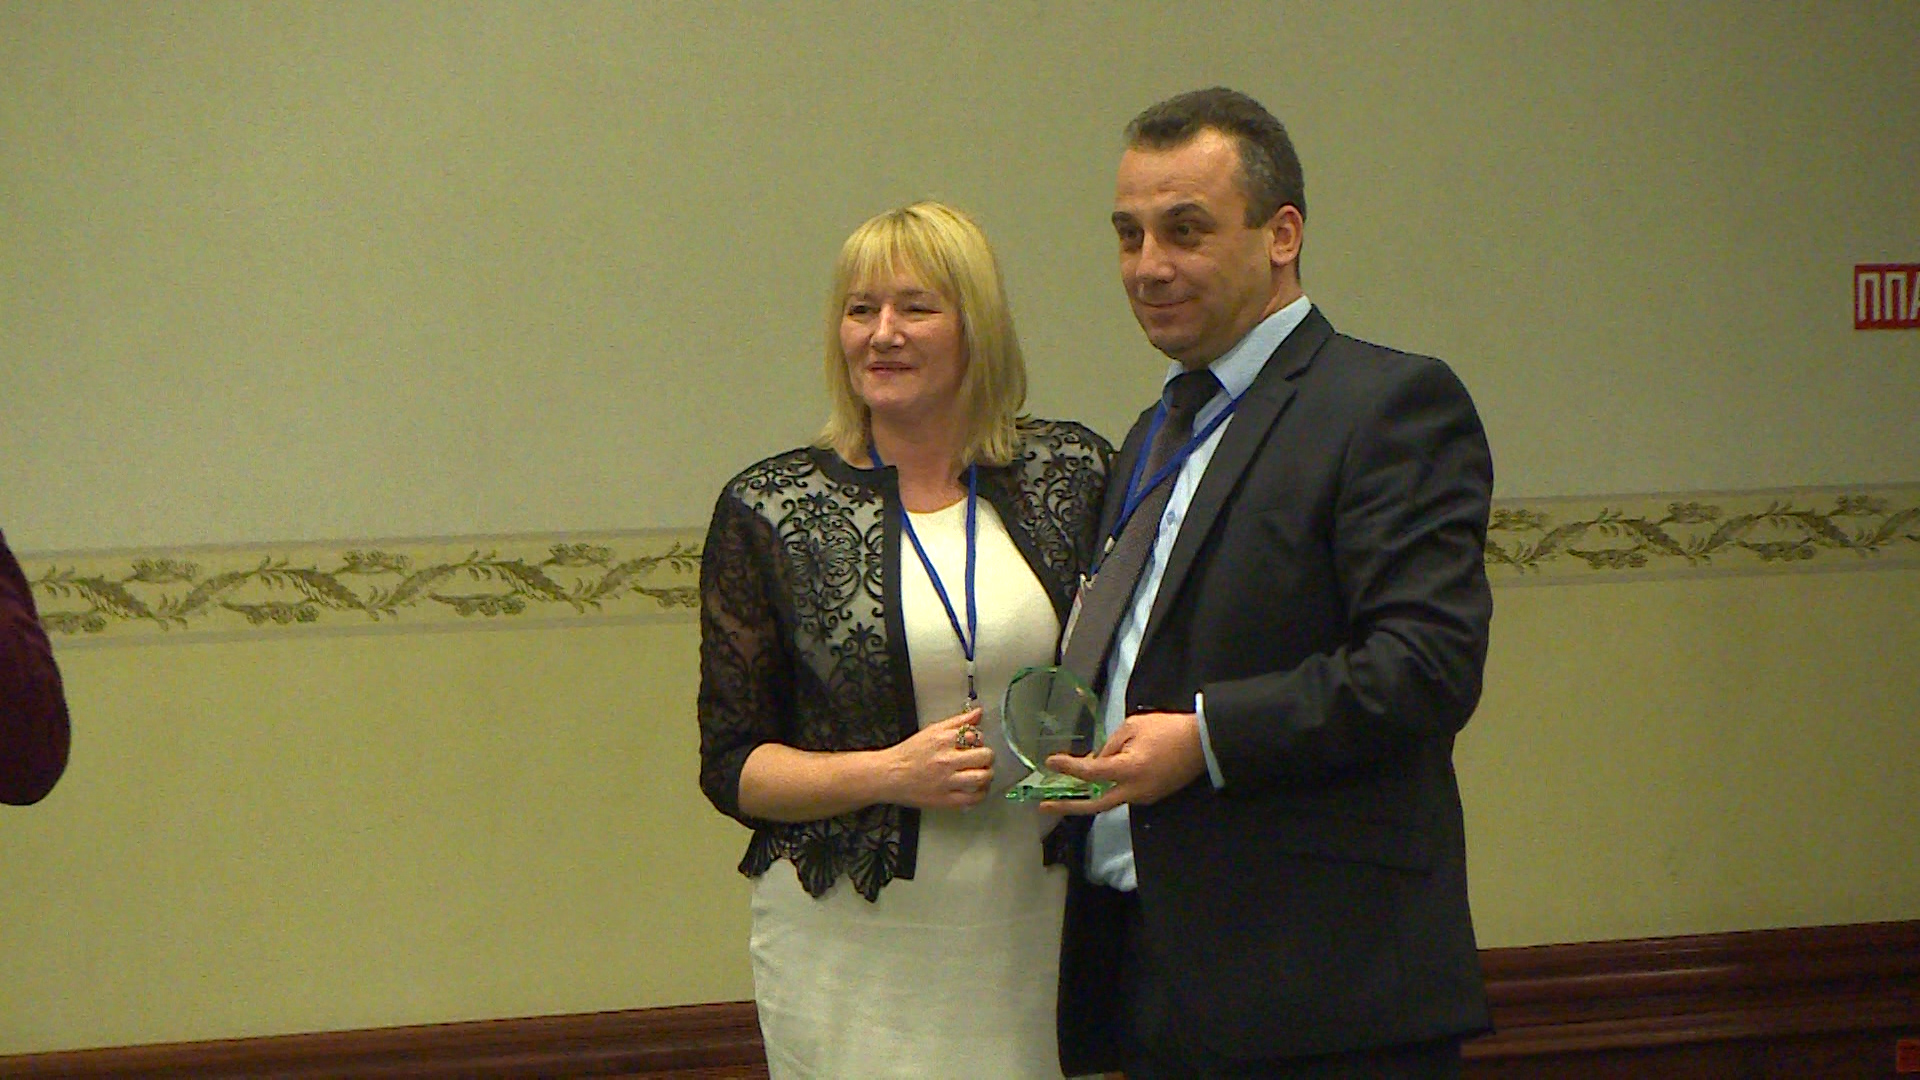 NDC Skopje receives recognition award from NICIE